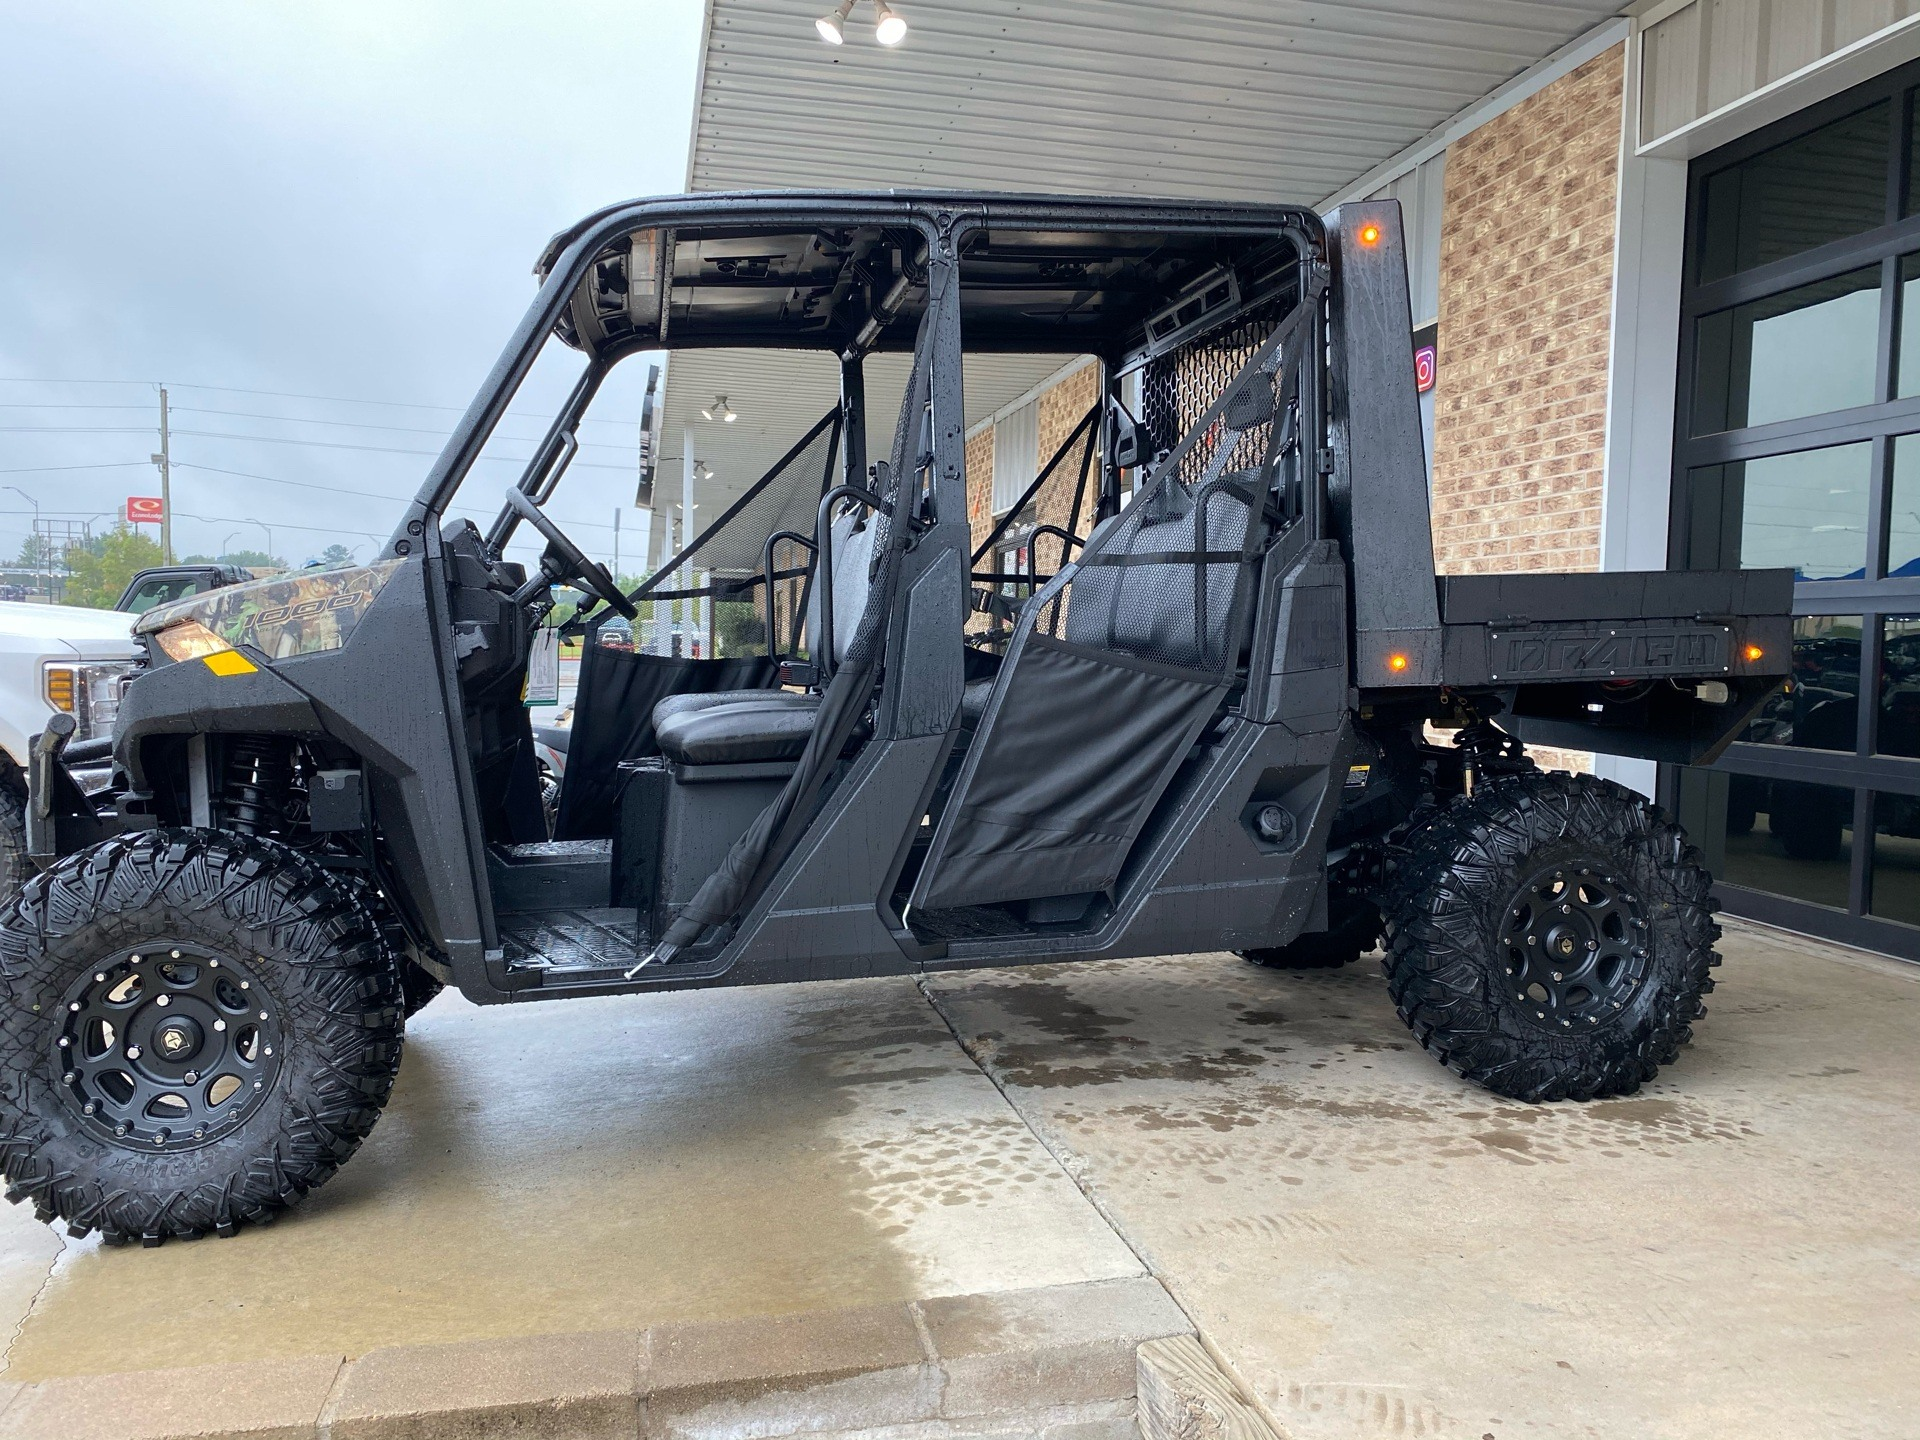 2020 Polaris Ranger Crew 1000 EPS in Marshall, Texas - Photo 3